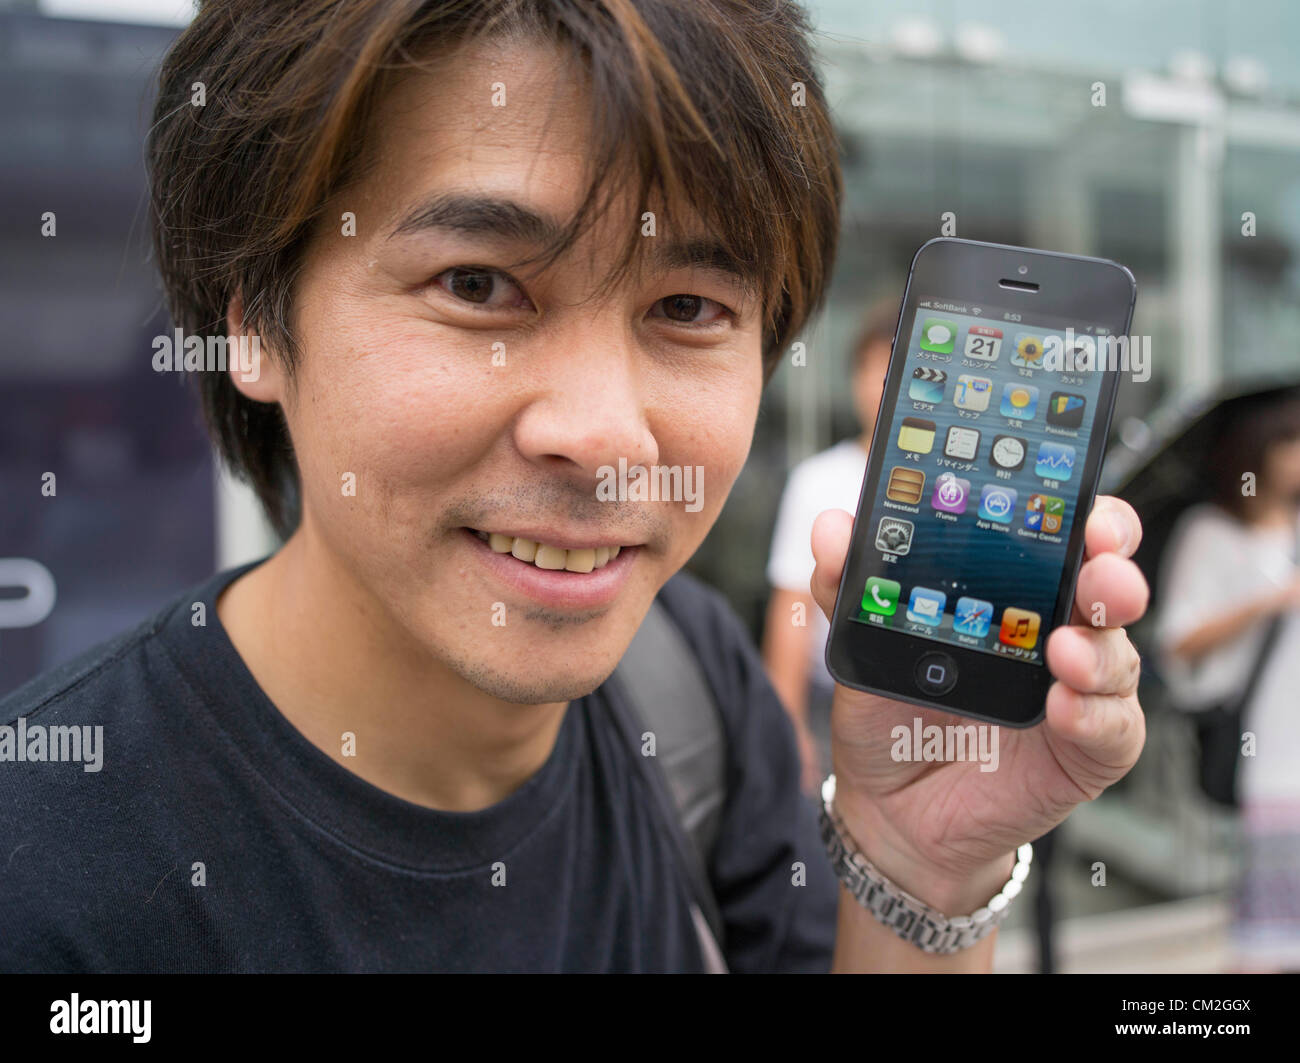 Japan, Tokyo. 21st September 2012. Japanese Apple fan holds his new iphone 5 on the day of the release. Ginza Apple Stock Photo